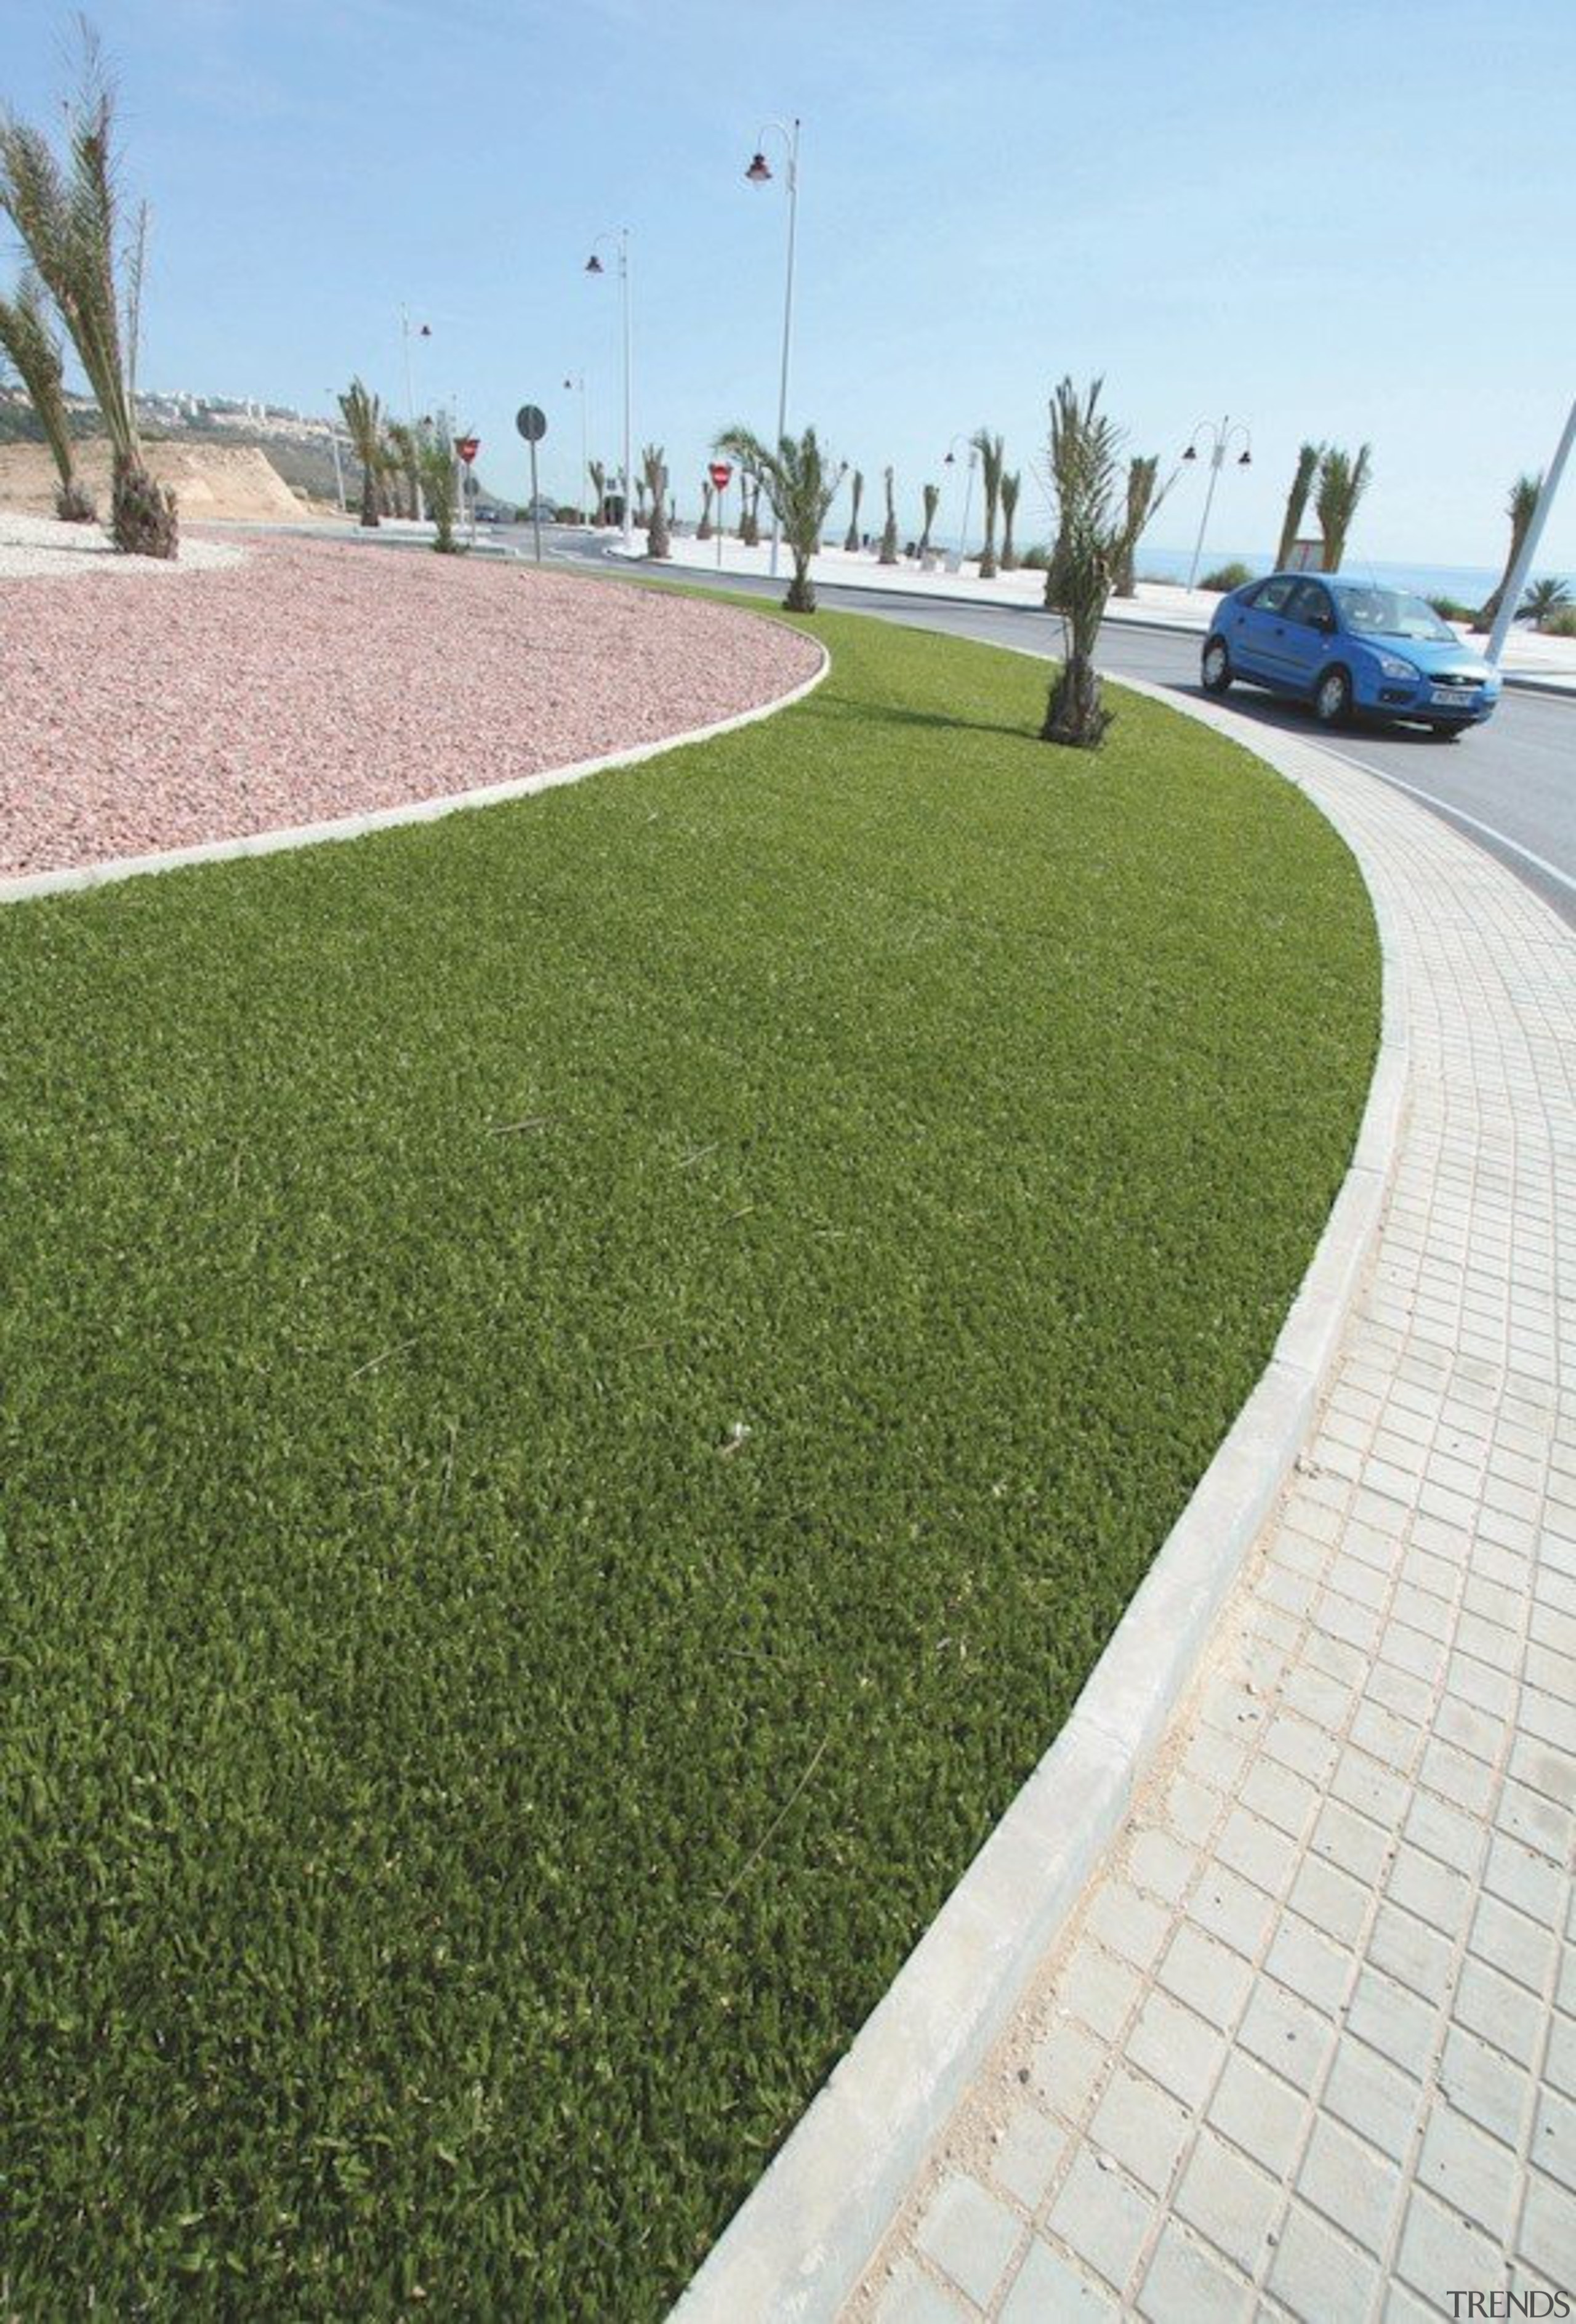 Commercial landscape - artificial turf | asphalt | artificial turf, asphalt, grass, land lot, landscaping, lawn, plant, road surface, walkway, brown, white